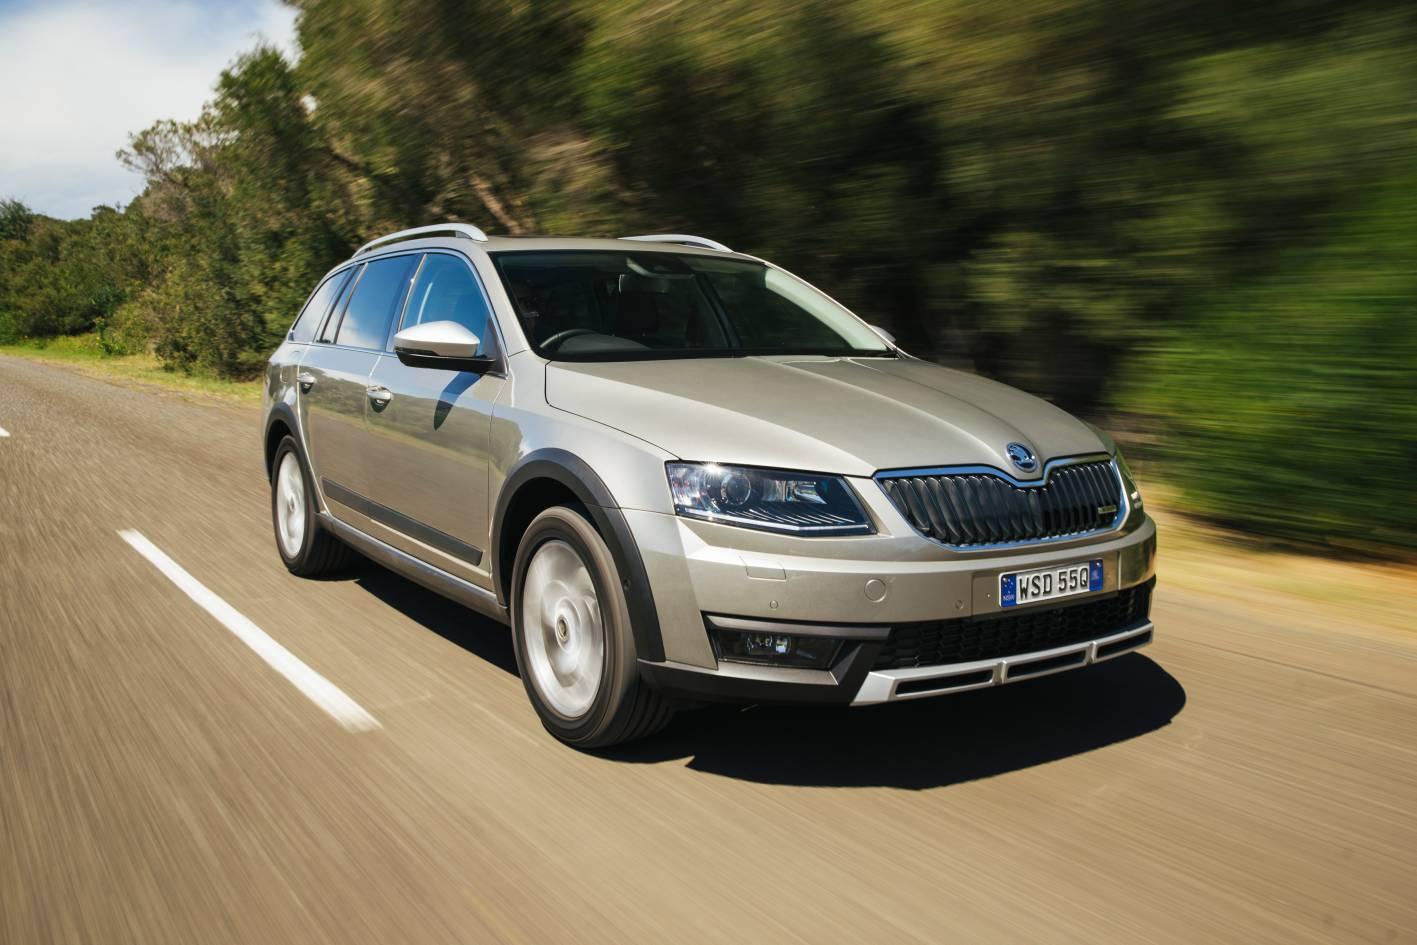 2015 skoda octavia scout 4x4 review practical motoring. Black Bedroom Furniture Sets. Home Design Ideas